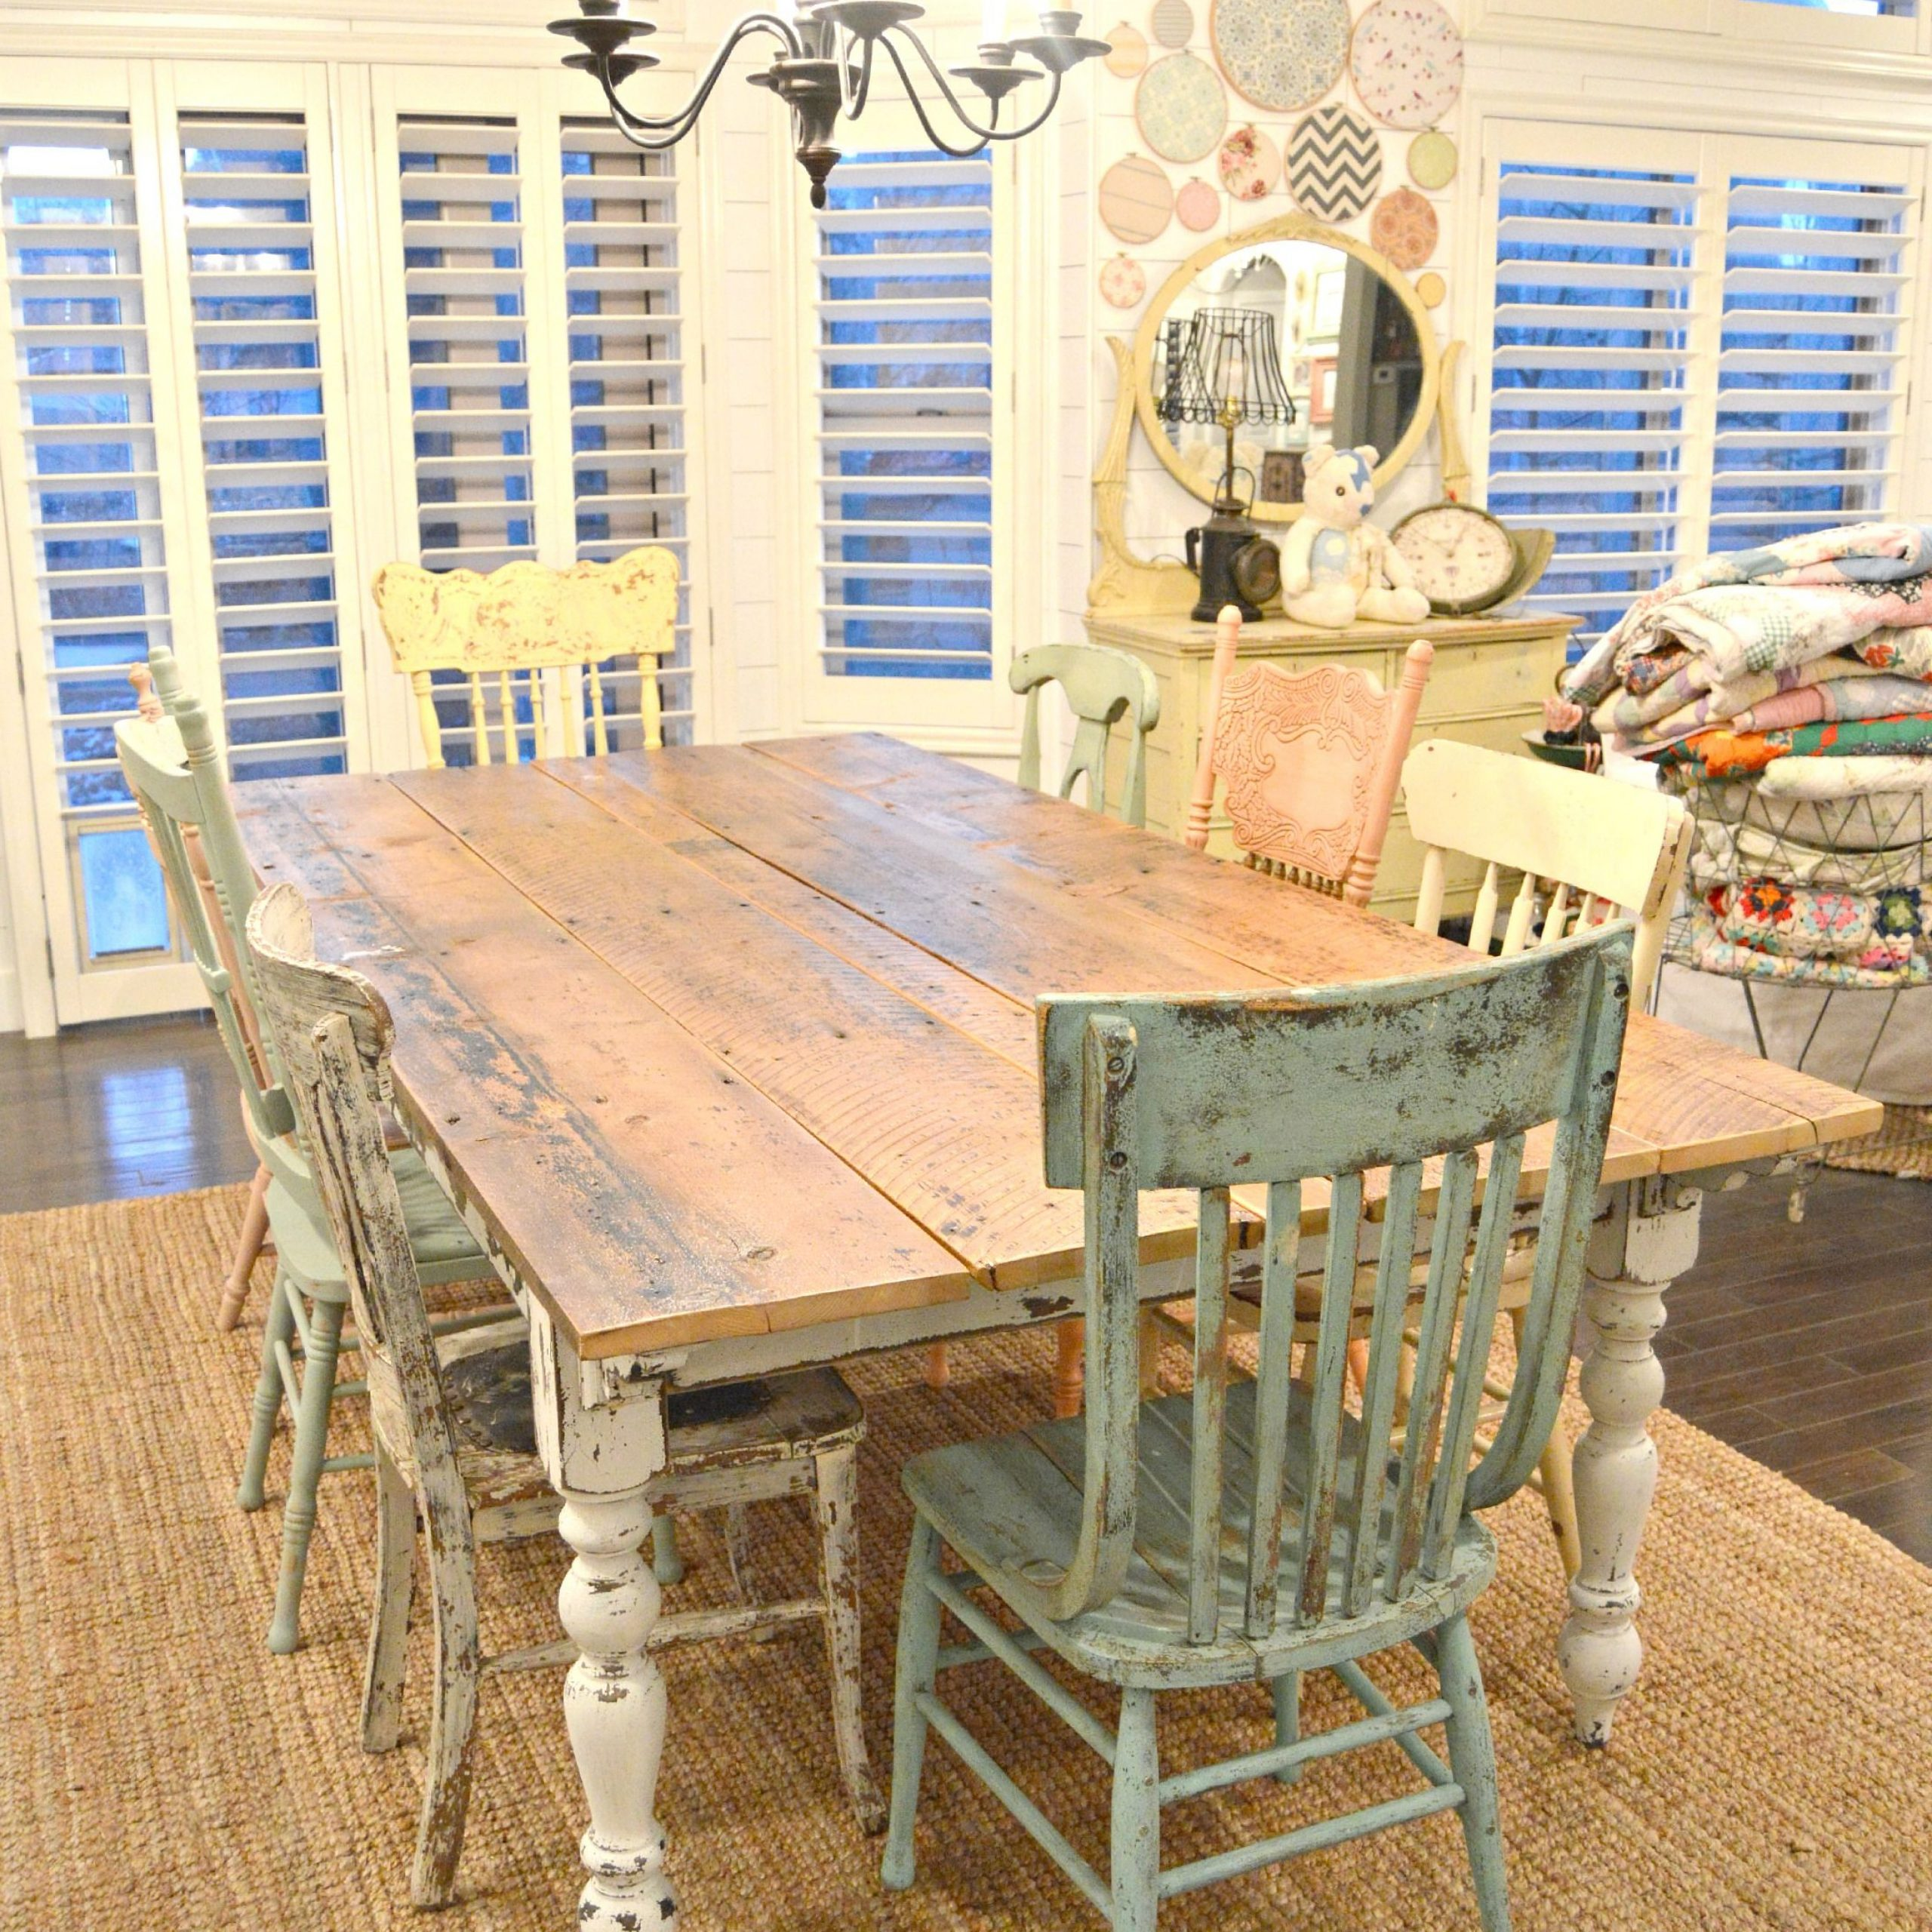 My New Farm Style Table W/mismatched Chairs! (View 13 of 30)